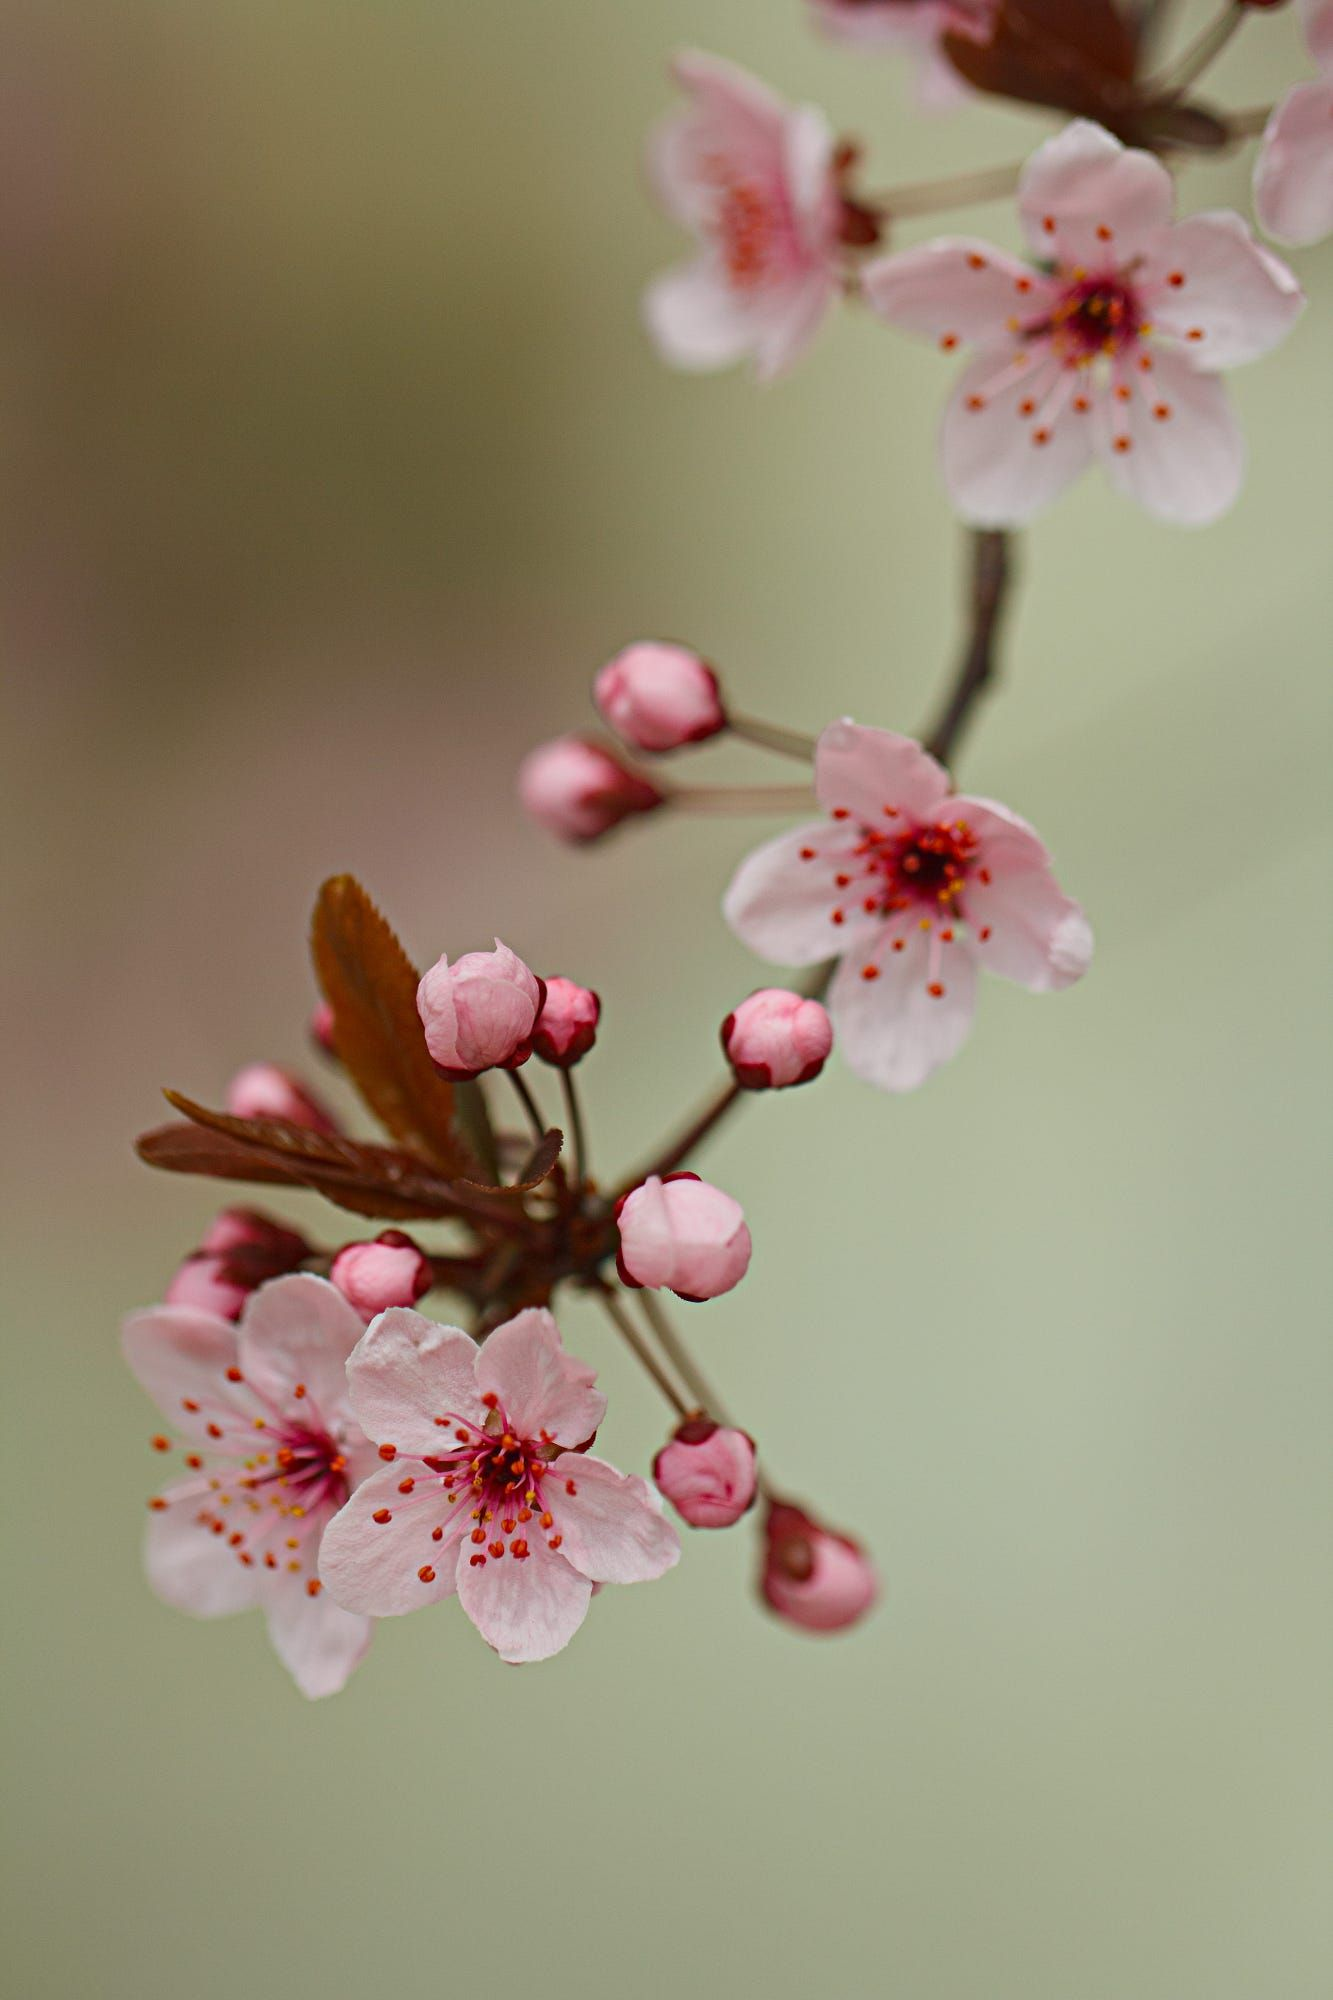 Cherry Blossom Trees To Dream Of Cherry Blossom Tree Represents Situations In Your Life That Are Perfe Cherry Blossom Tree Pink Blossom Tree Cherry Blossom Art